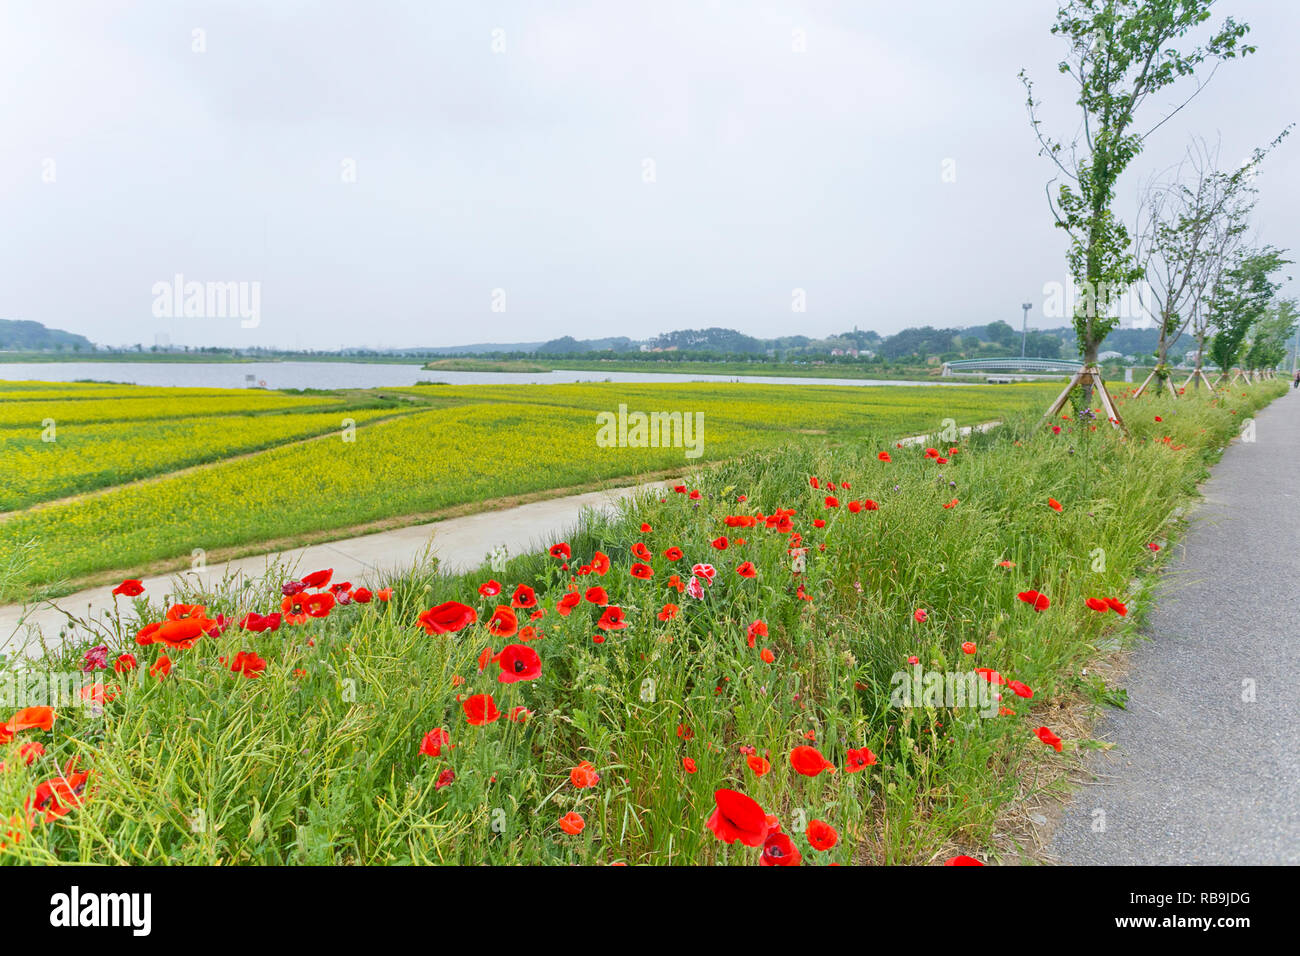 Rapeseed flower in Gyeongpo Provincial Park, Gangneung, South Korea. - Stock Image